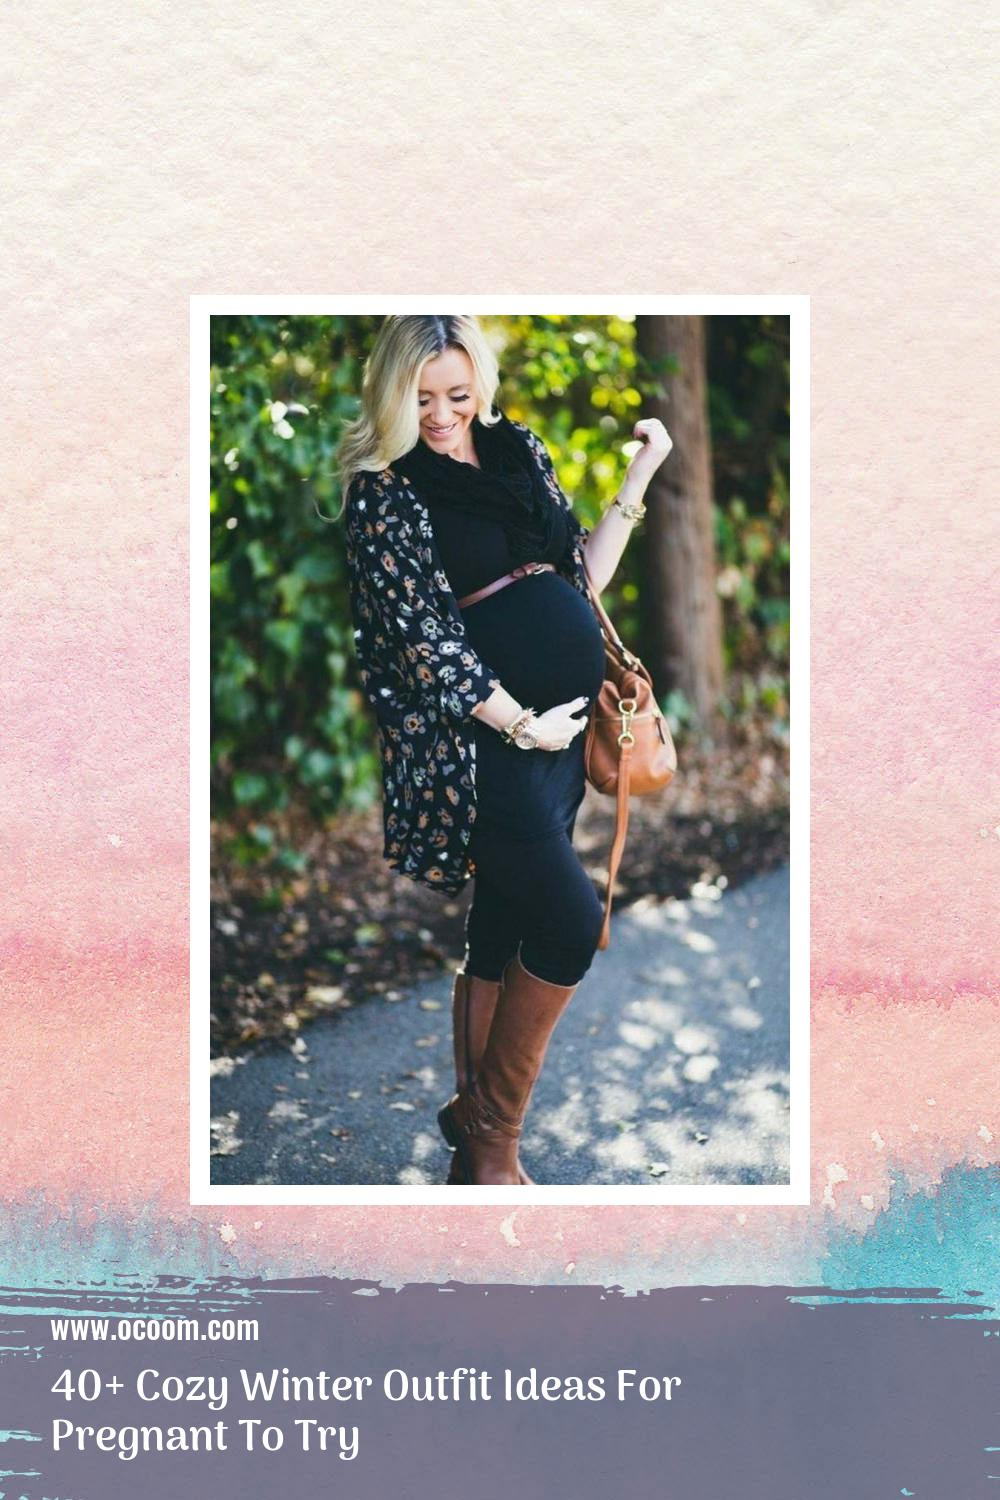 40+ Cozy Winter Outfit Ideas For Pregnant To Try 6